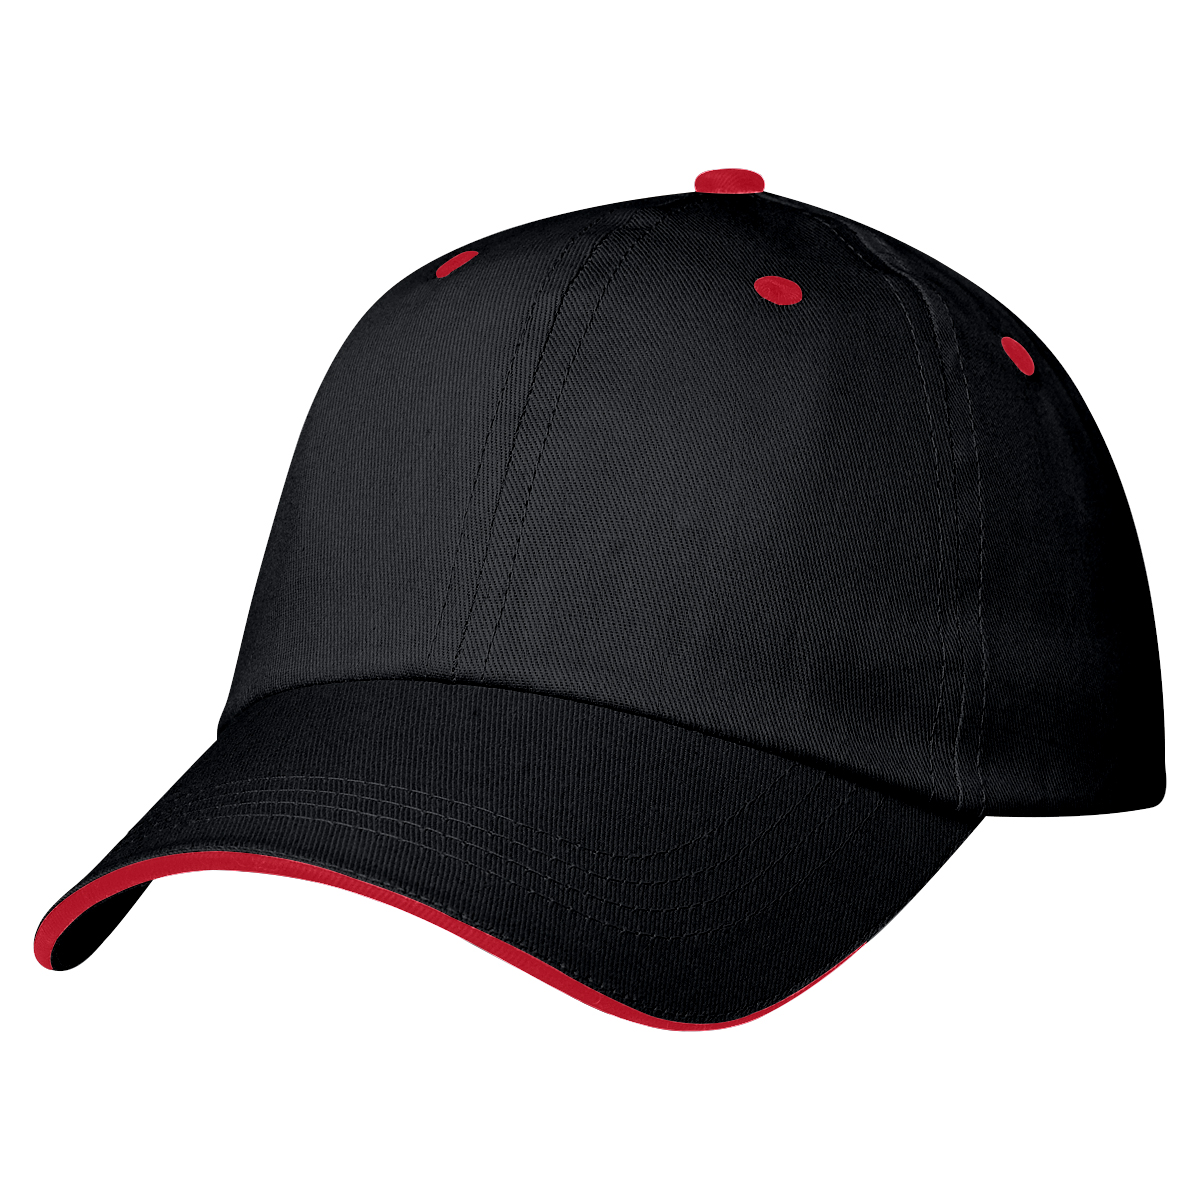 Black w/ Red Accents Price Buster Sandwich Cap